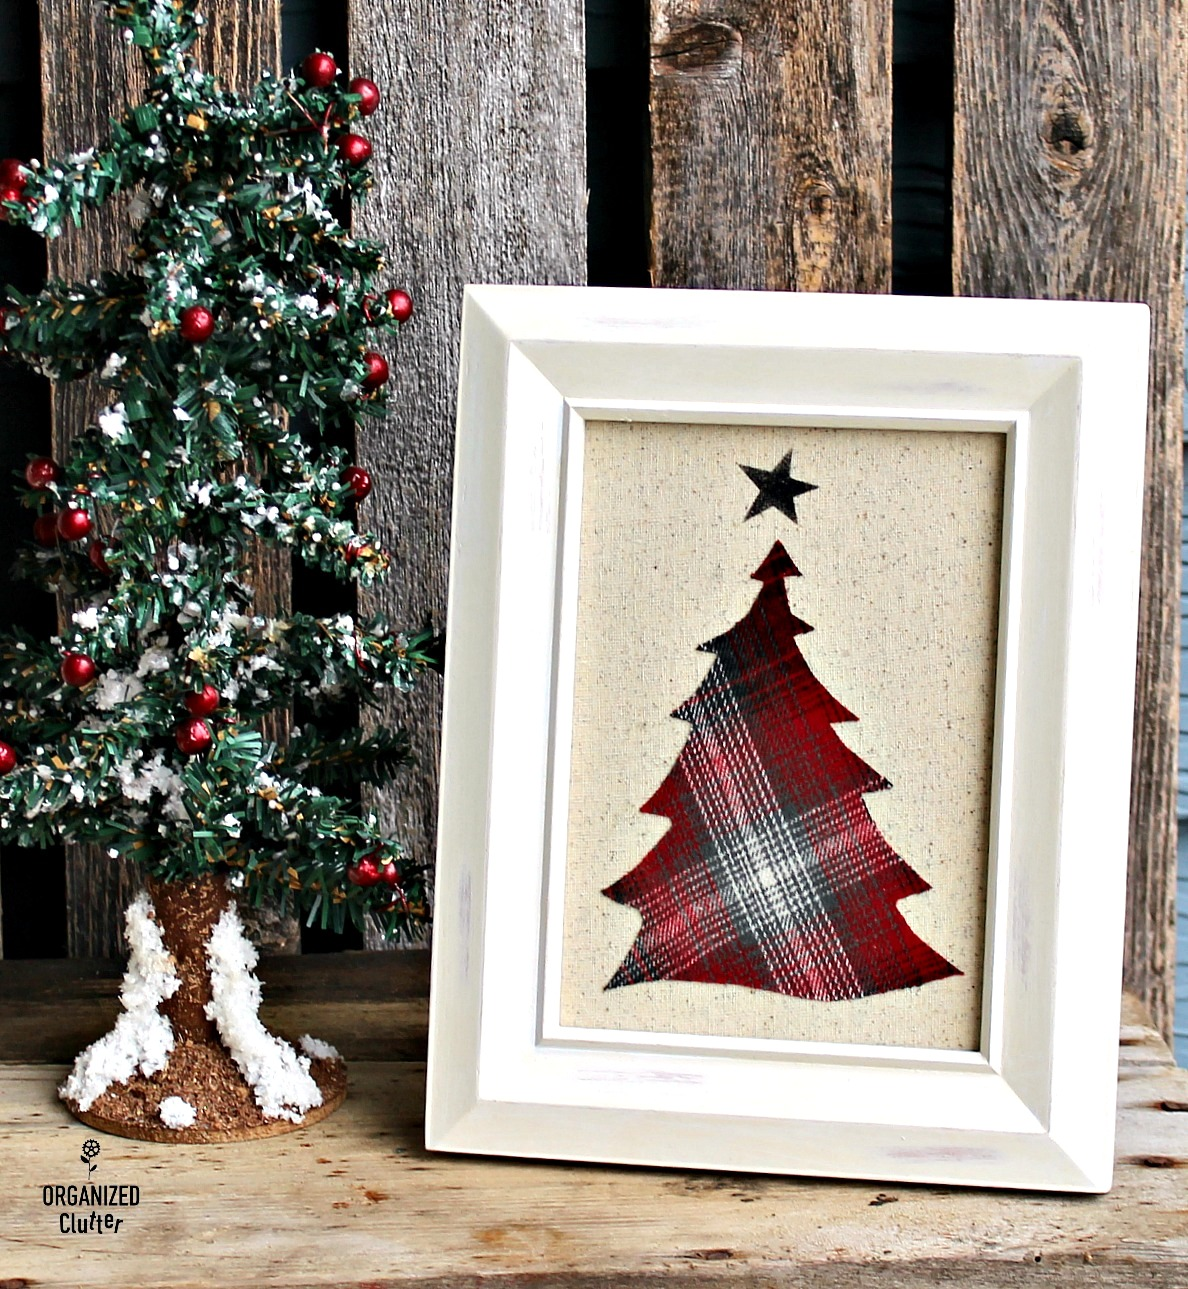 Plaid fabric Christmas trees by Organized Clutter, featured on Funky Junk Interiors